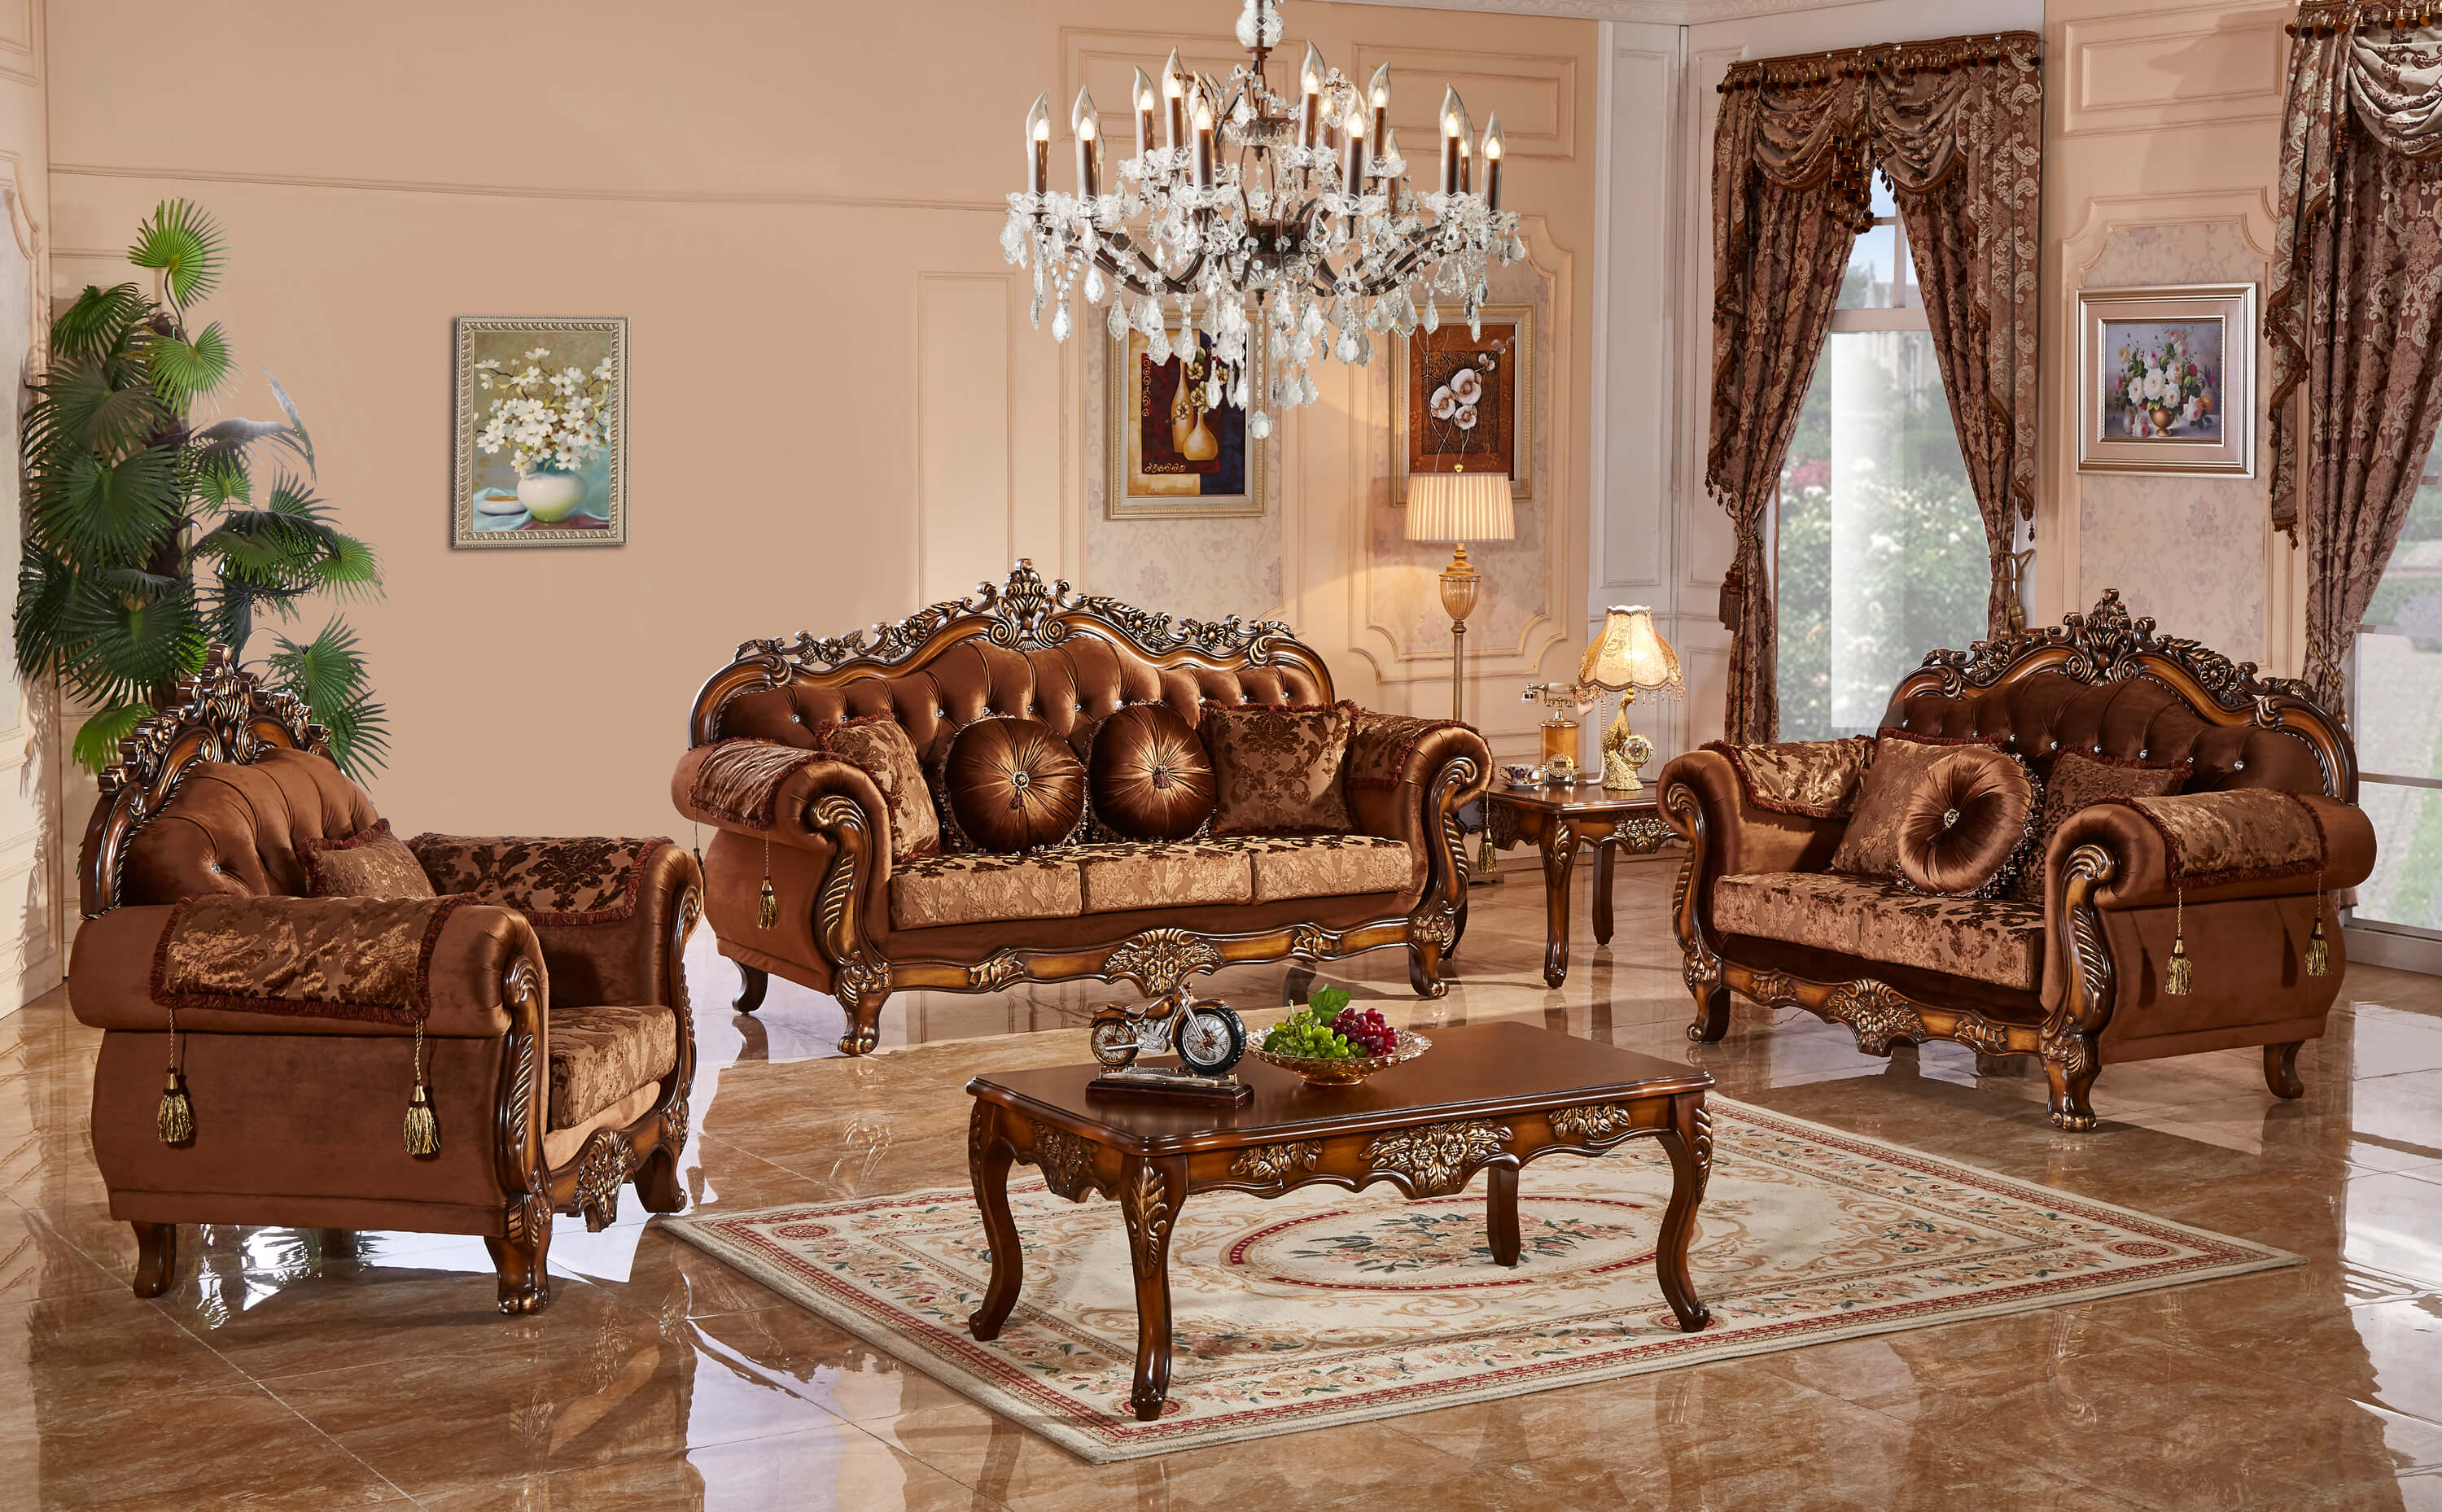 Calm Meridian Furniture Living Room Collection Meridian Furniture Living Room Collection Fabric Living Room Sets Furniture Small Formal Living Room Furniture Placement Formal Living Room living room Furniture For Formal Living Room